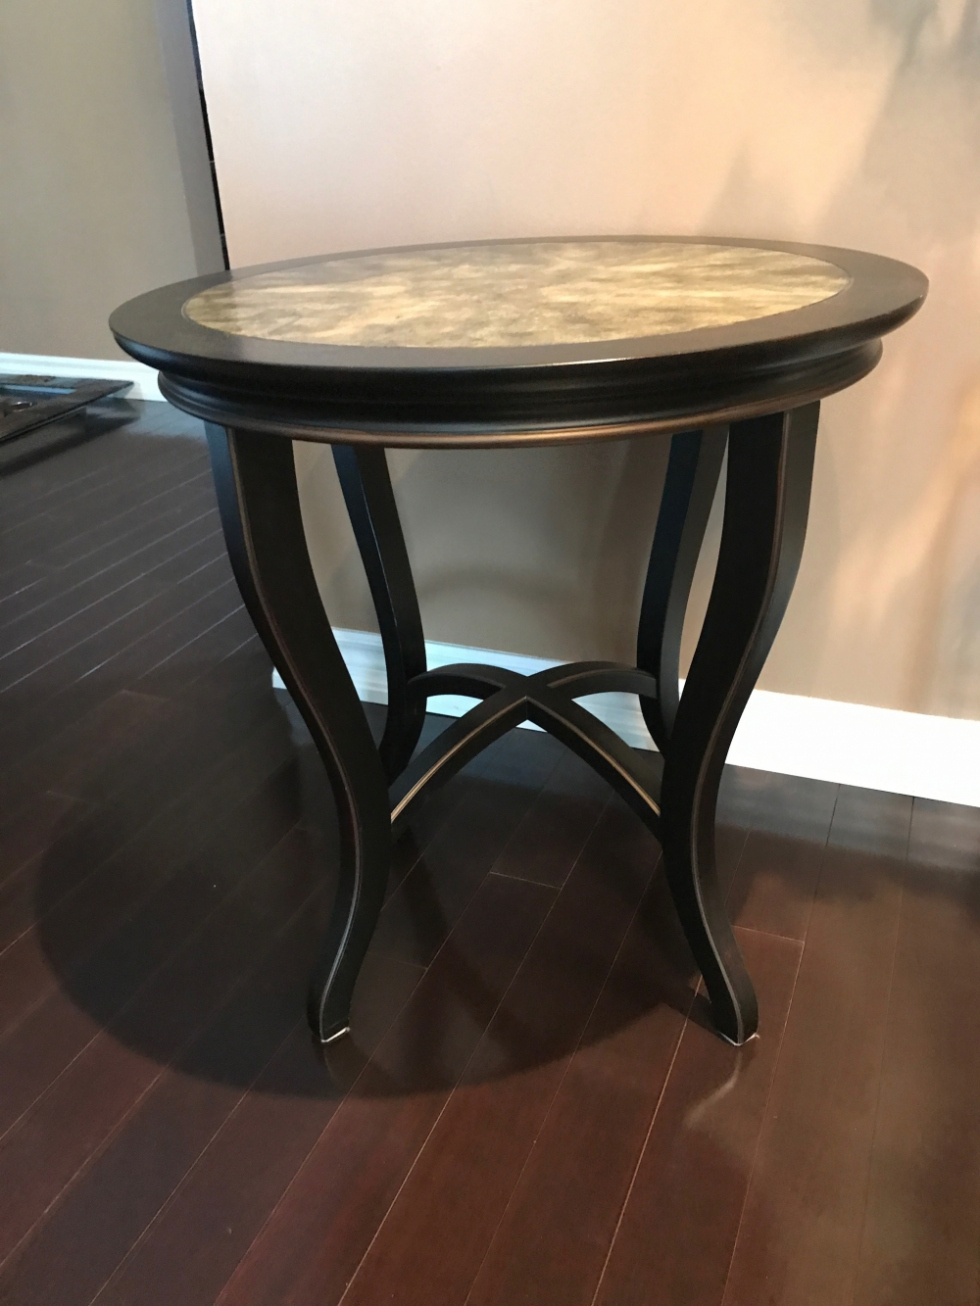 furniture small accent table nesting tables within winsome wood beechwood end espresso interesting applied your house design target kids oval marble ikea storage bins screw wooden